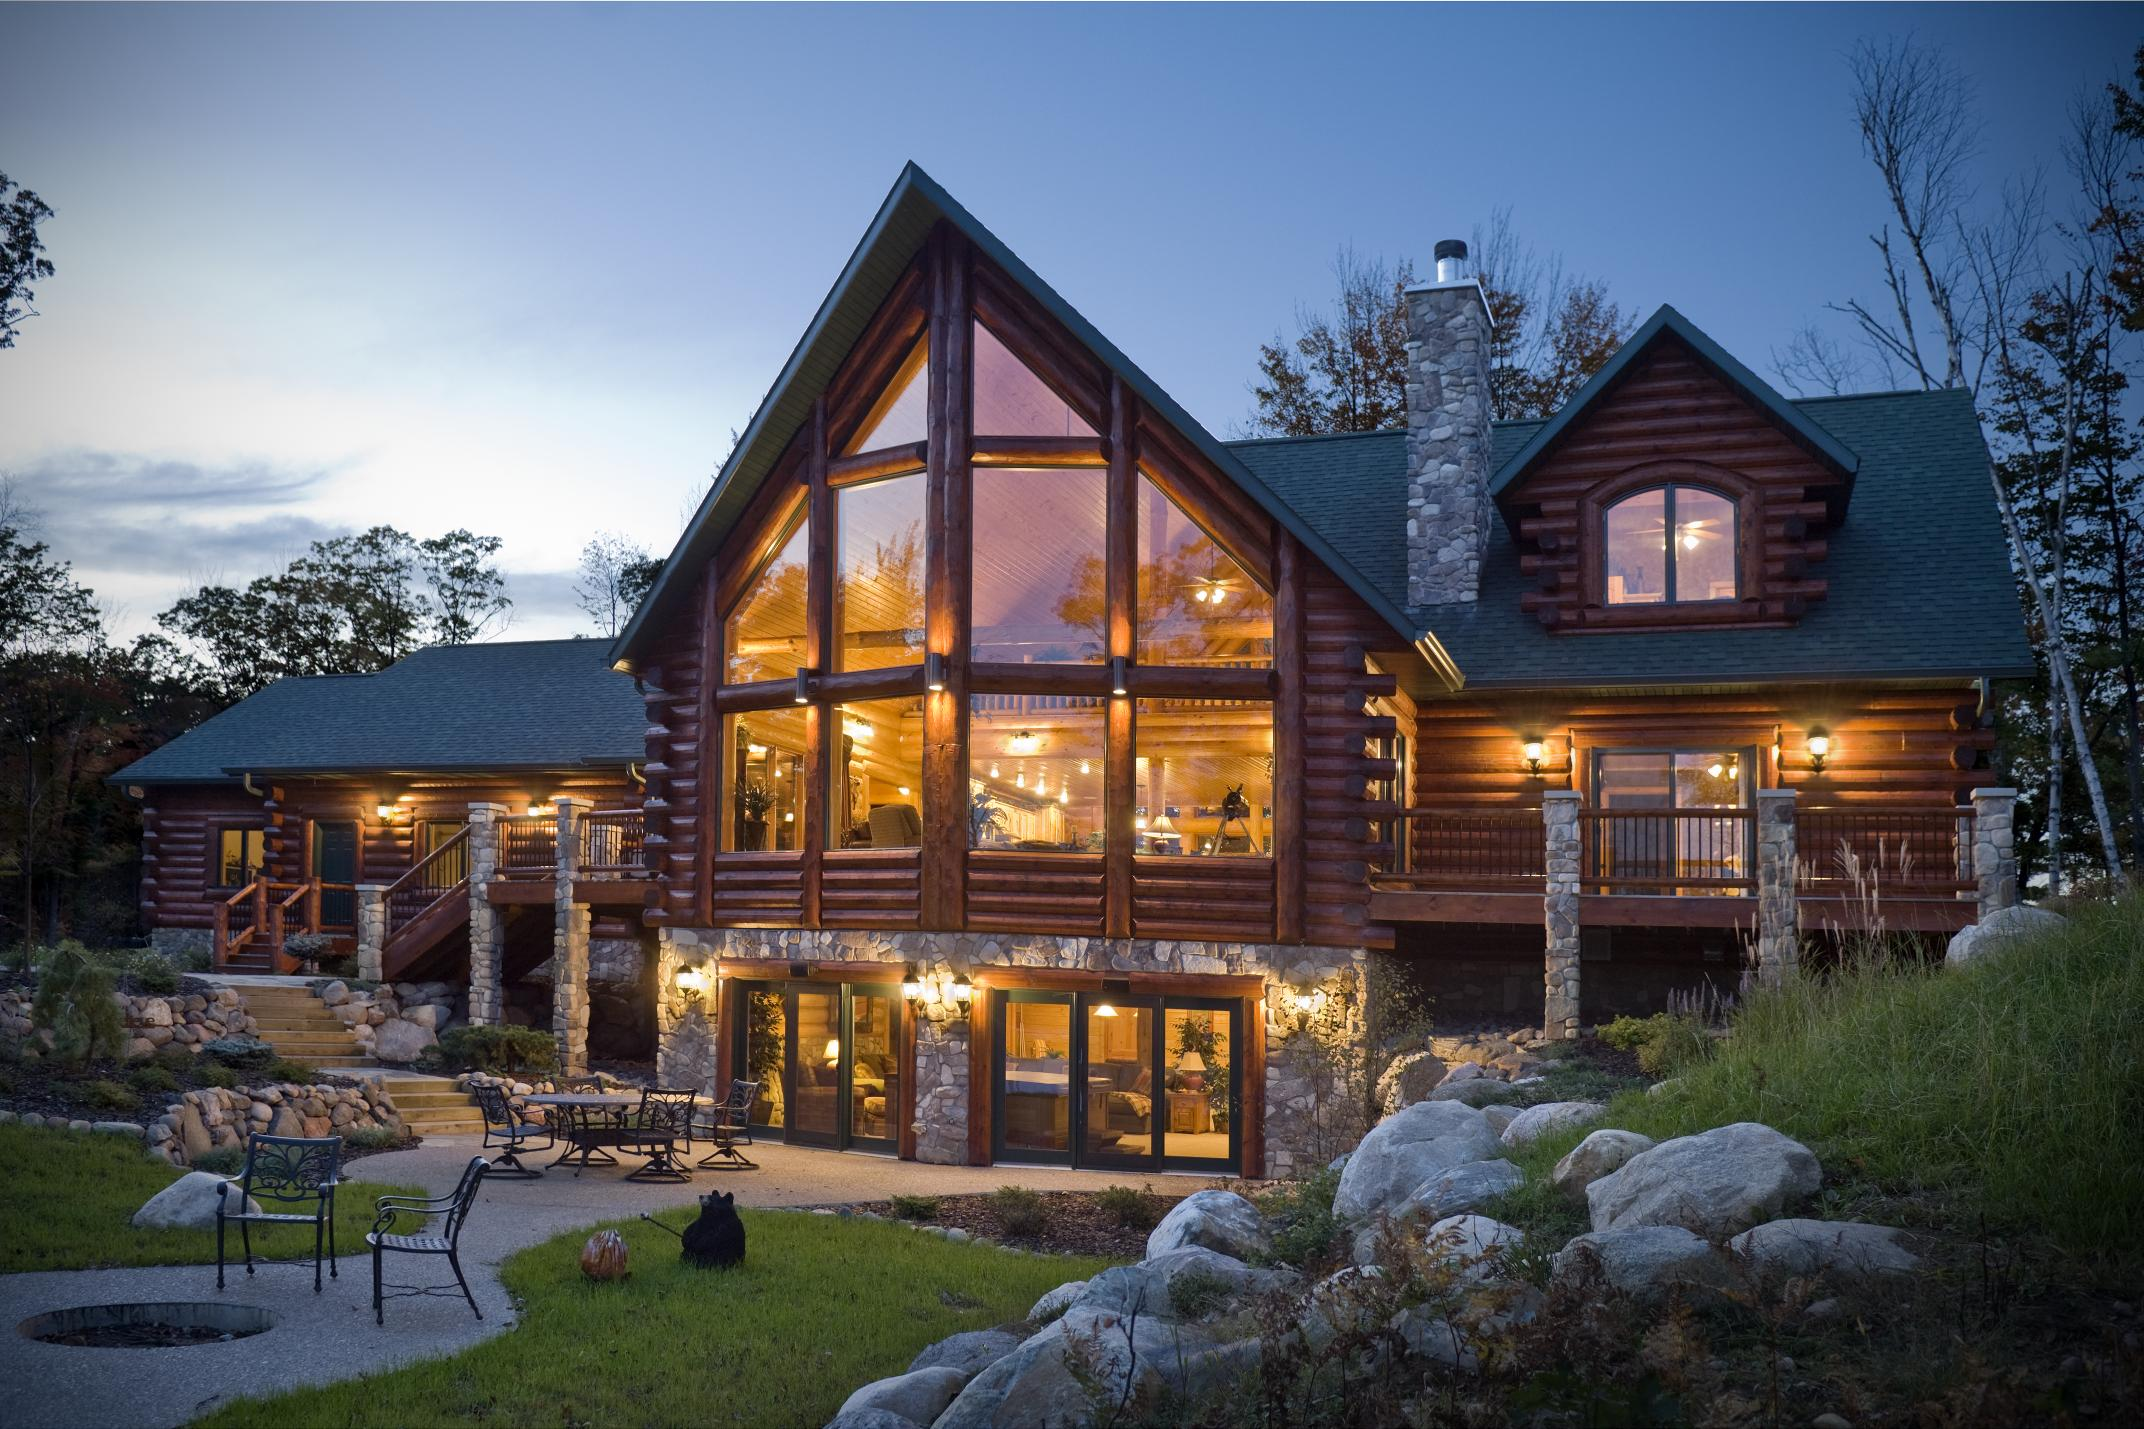 Living in a Log Home! – imagine your homes